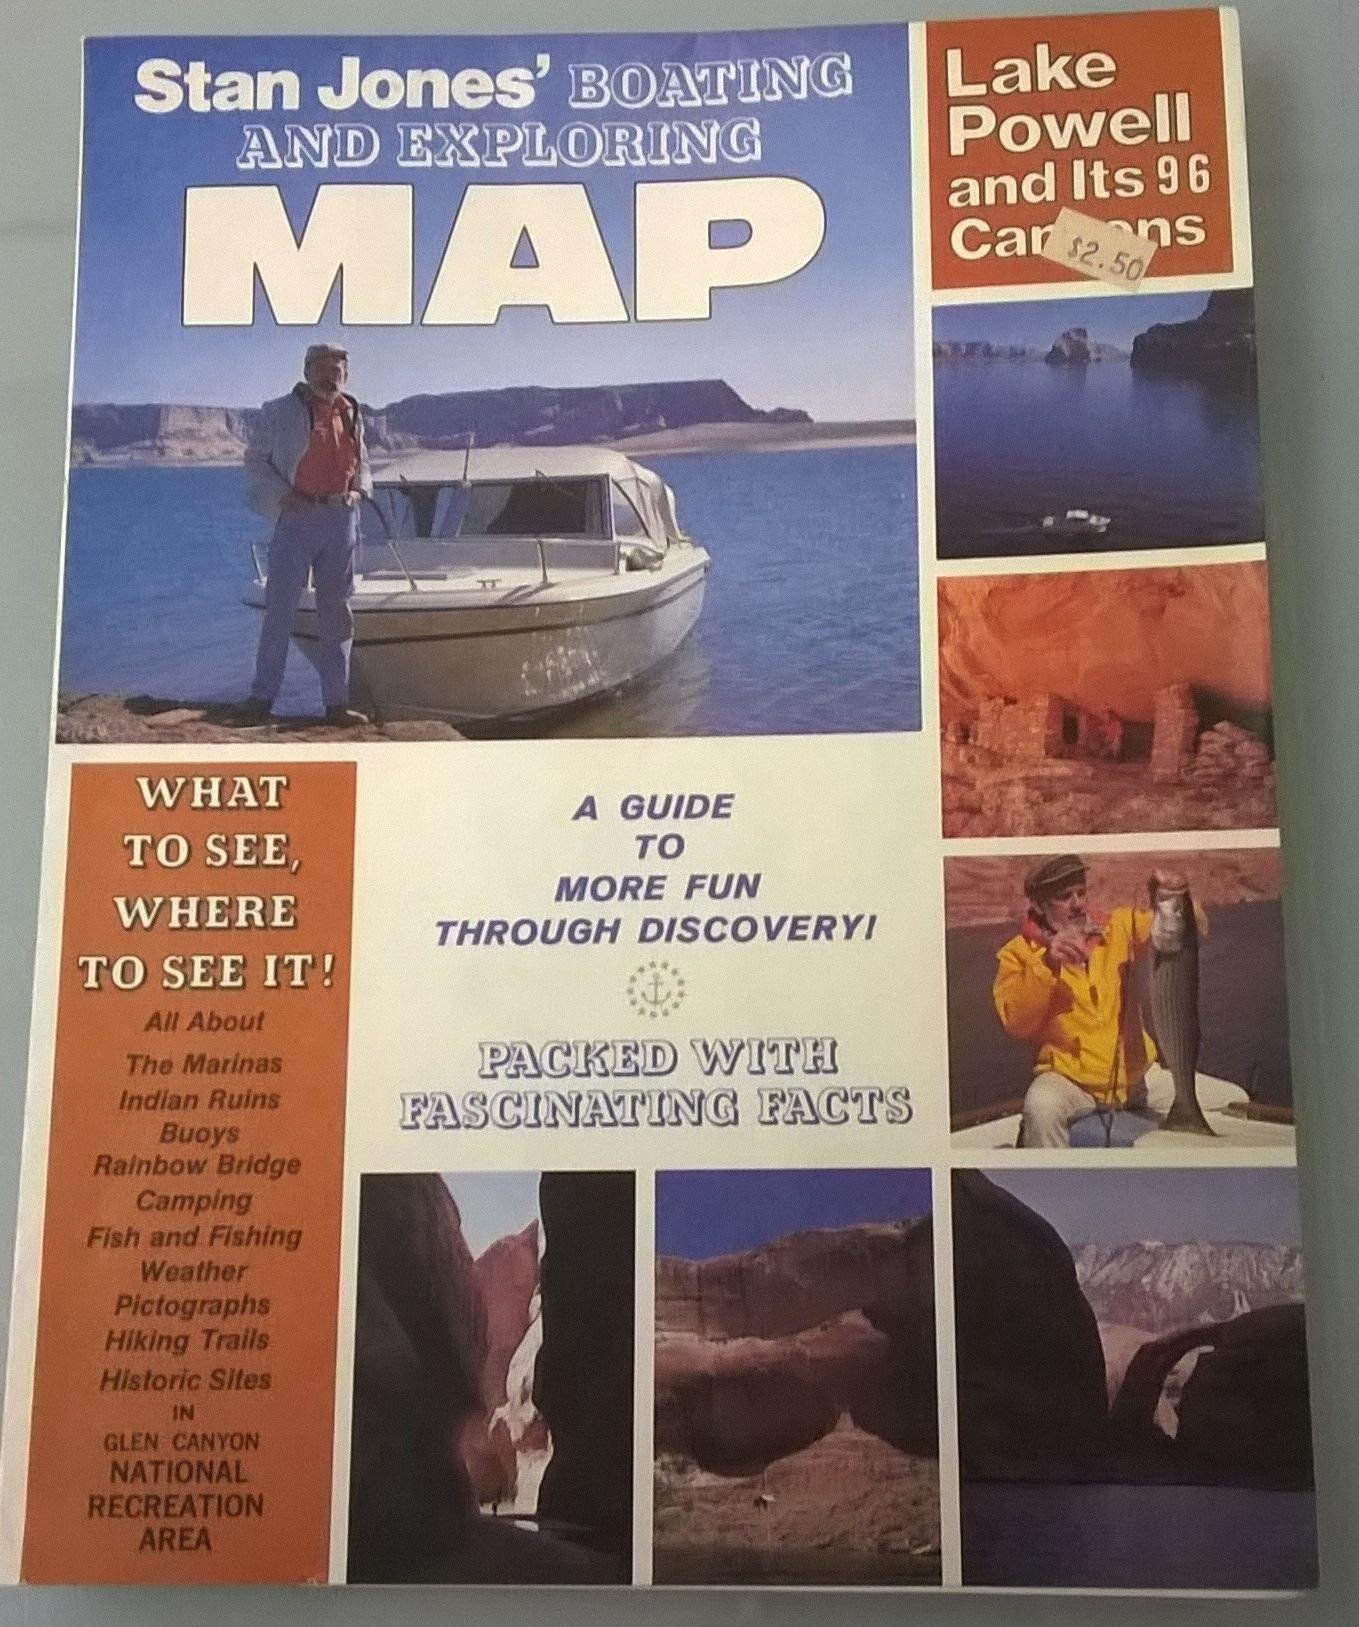 By Stan Jones Lake Powell and Its 96 Canyons Boating and ... Map Of All Stan on map of afghanistan and surrounding countries, map of switzerland, map of europe and middle east, map of fribourg, map of atlanta, map of swiss alps, map of rothenburg, map of stuttgart, map of geneva, map of world, map of basel, map of cambridge, map of russia and neighboring countries, map of asia, map of chernobyl, map of winterthur, map of san francisco, map of tyrol, map of la chaux-de-fonds, map of st. moritz,